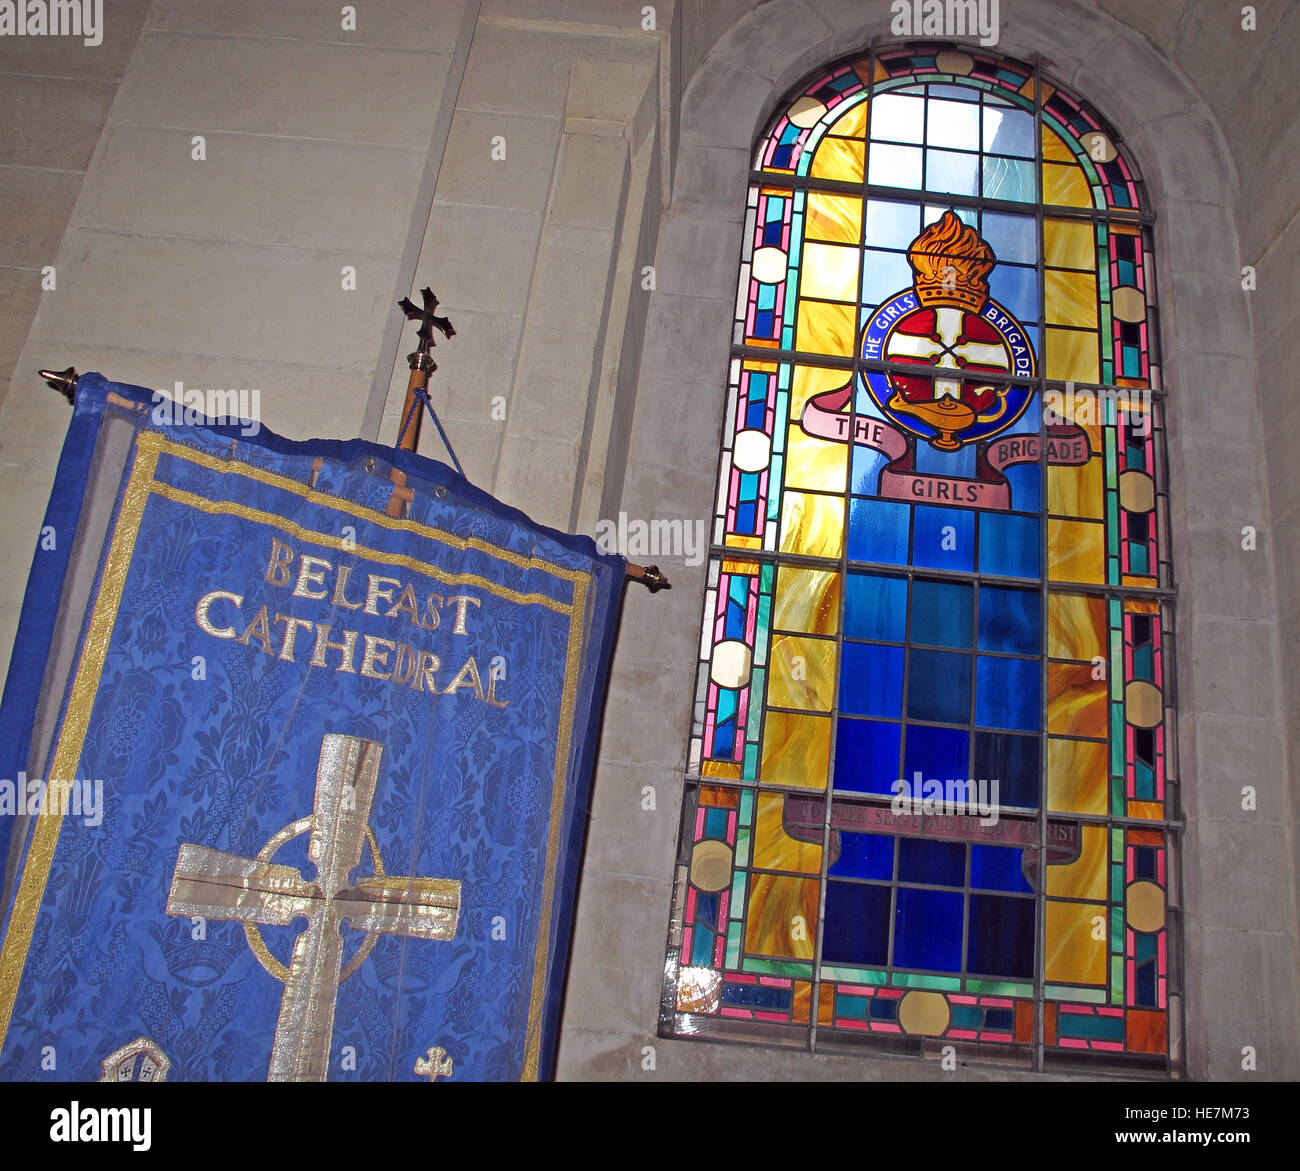 St Annes Belfast Cathedral Interior,Girls Brigade stained glass window and flag - Stock Image